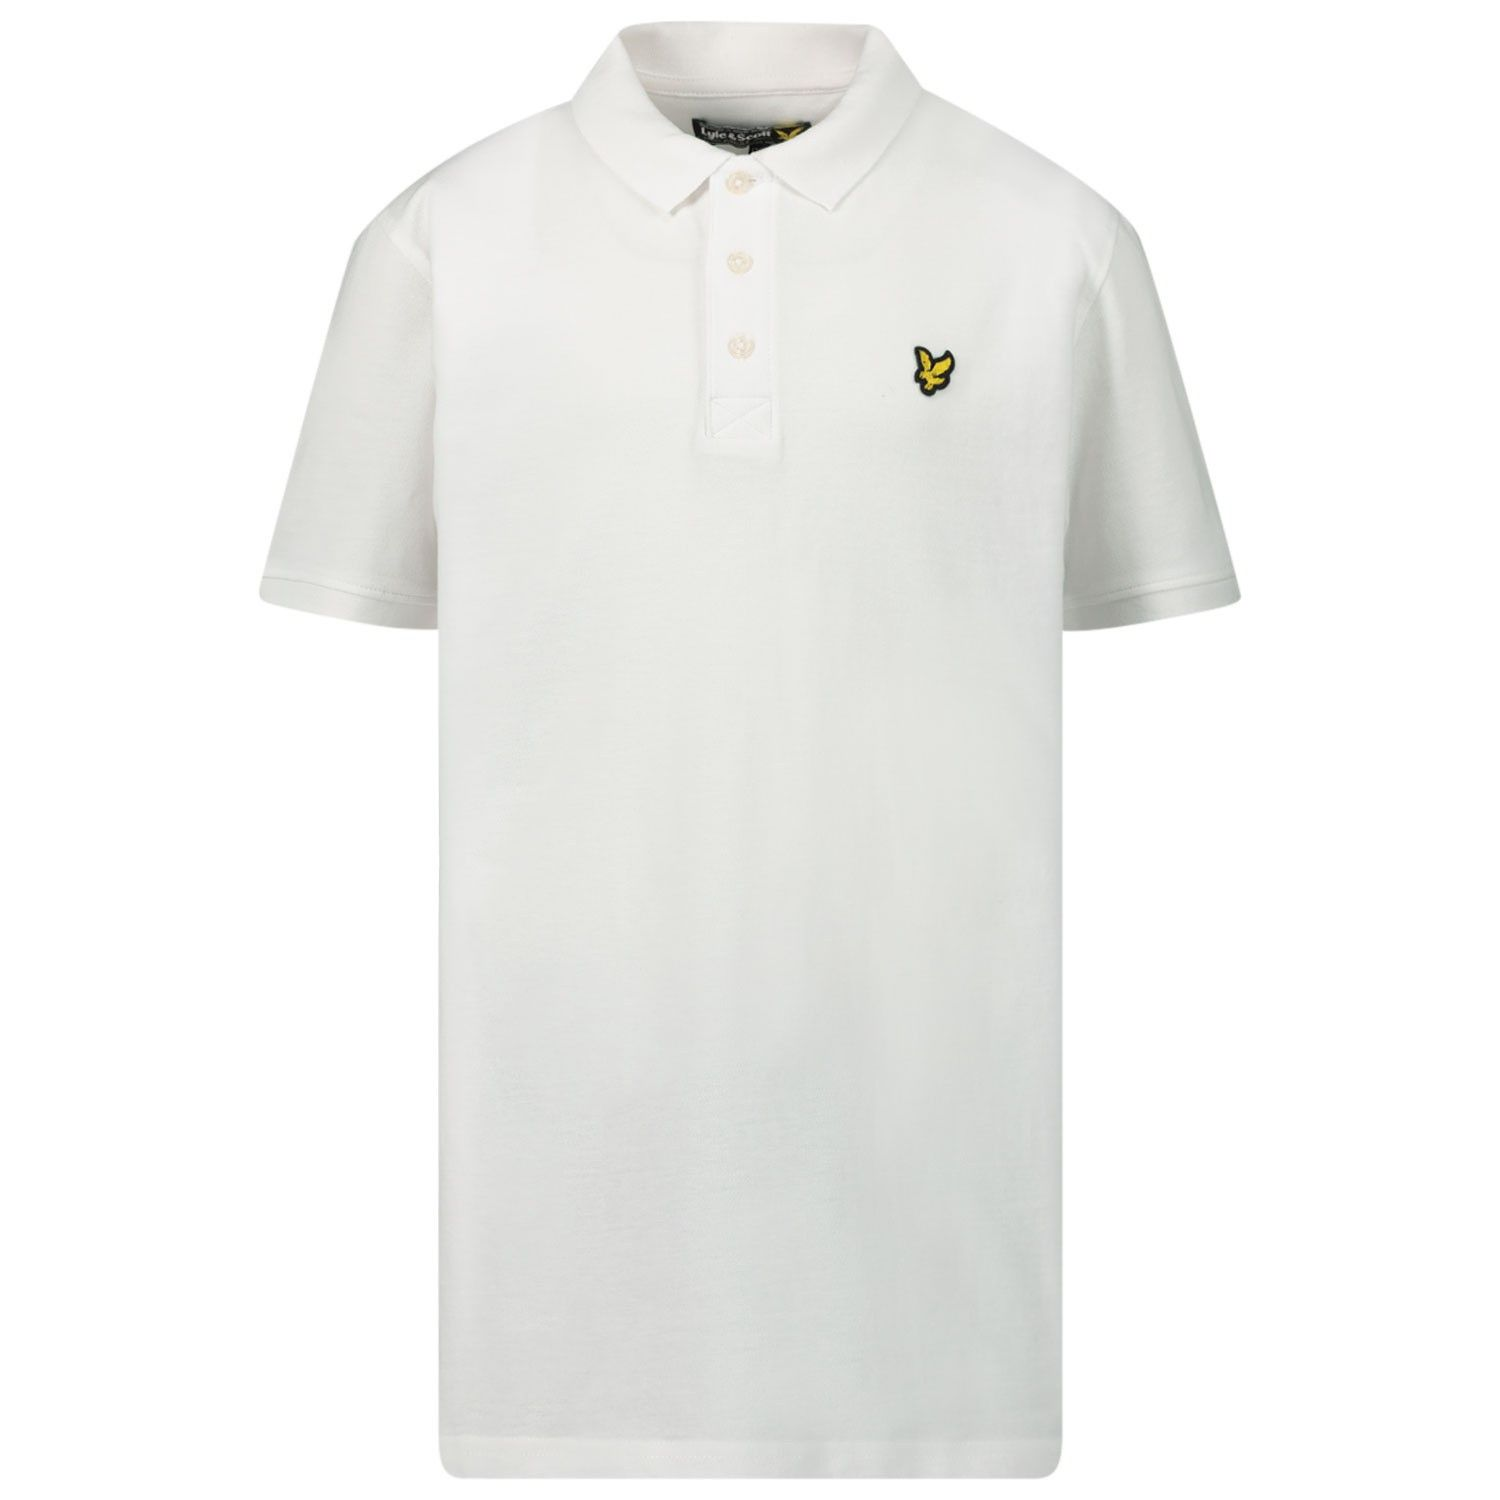 Picture of Lyle & Scott LSC0145S kids polo shirt white